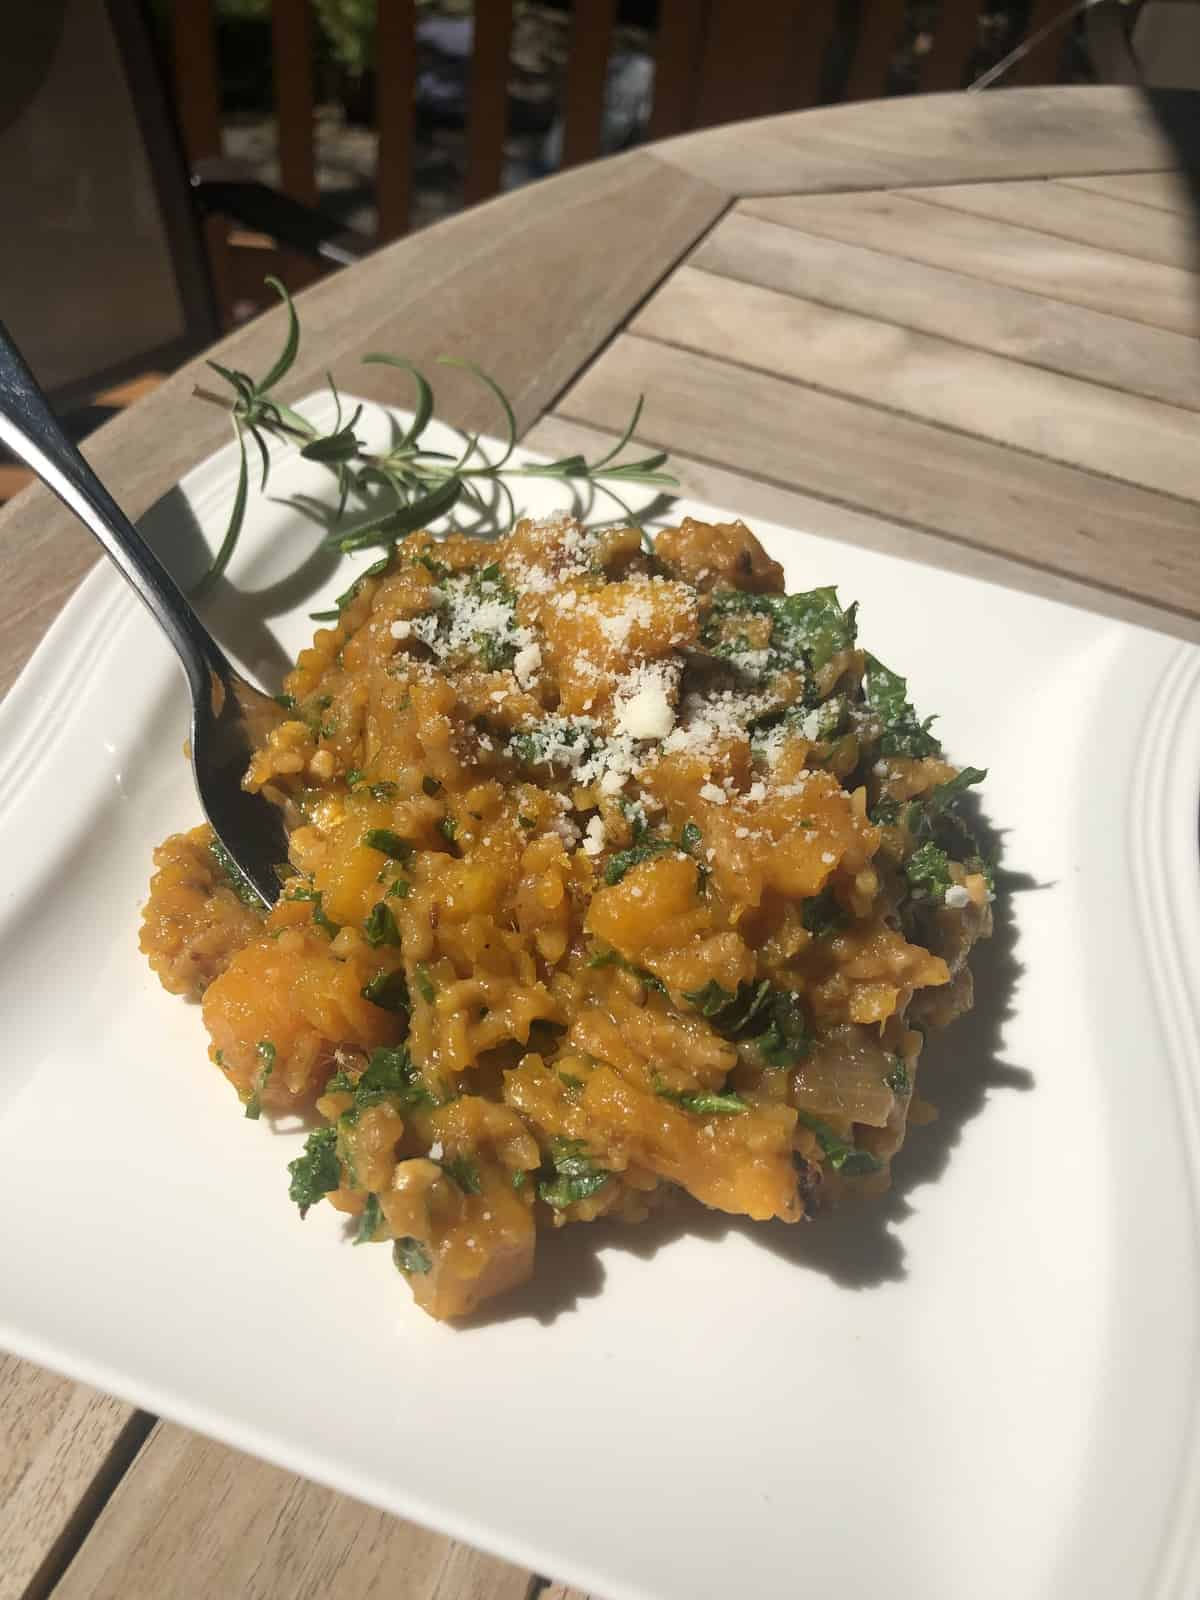 a spoonful of risotto over a plate of risotto on a wooden table